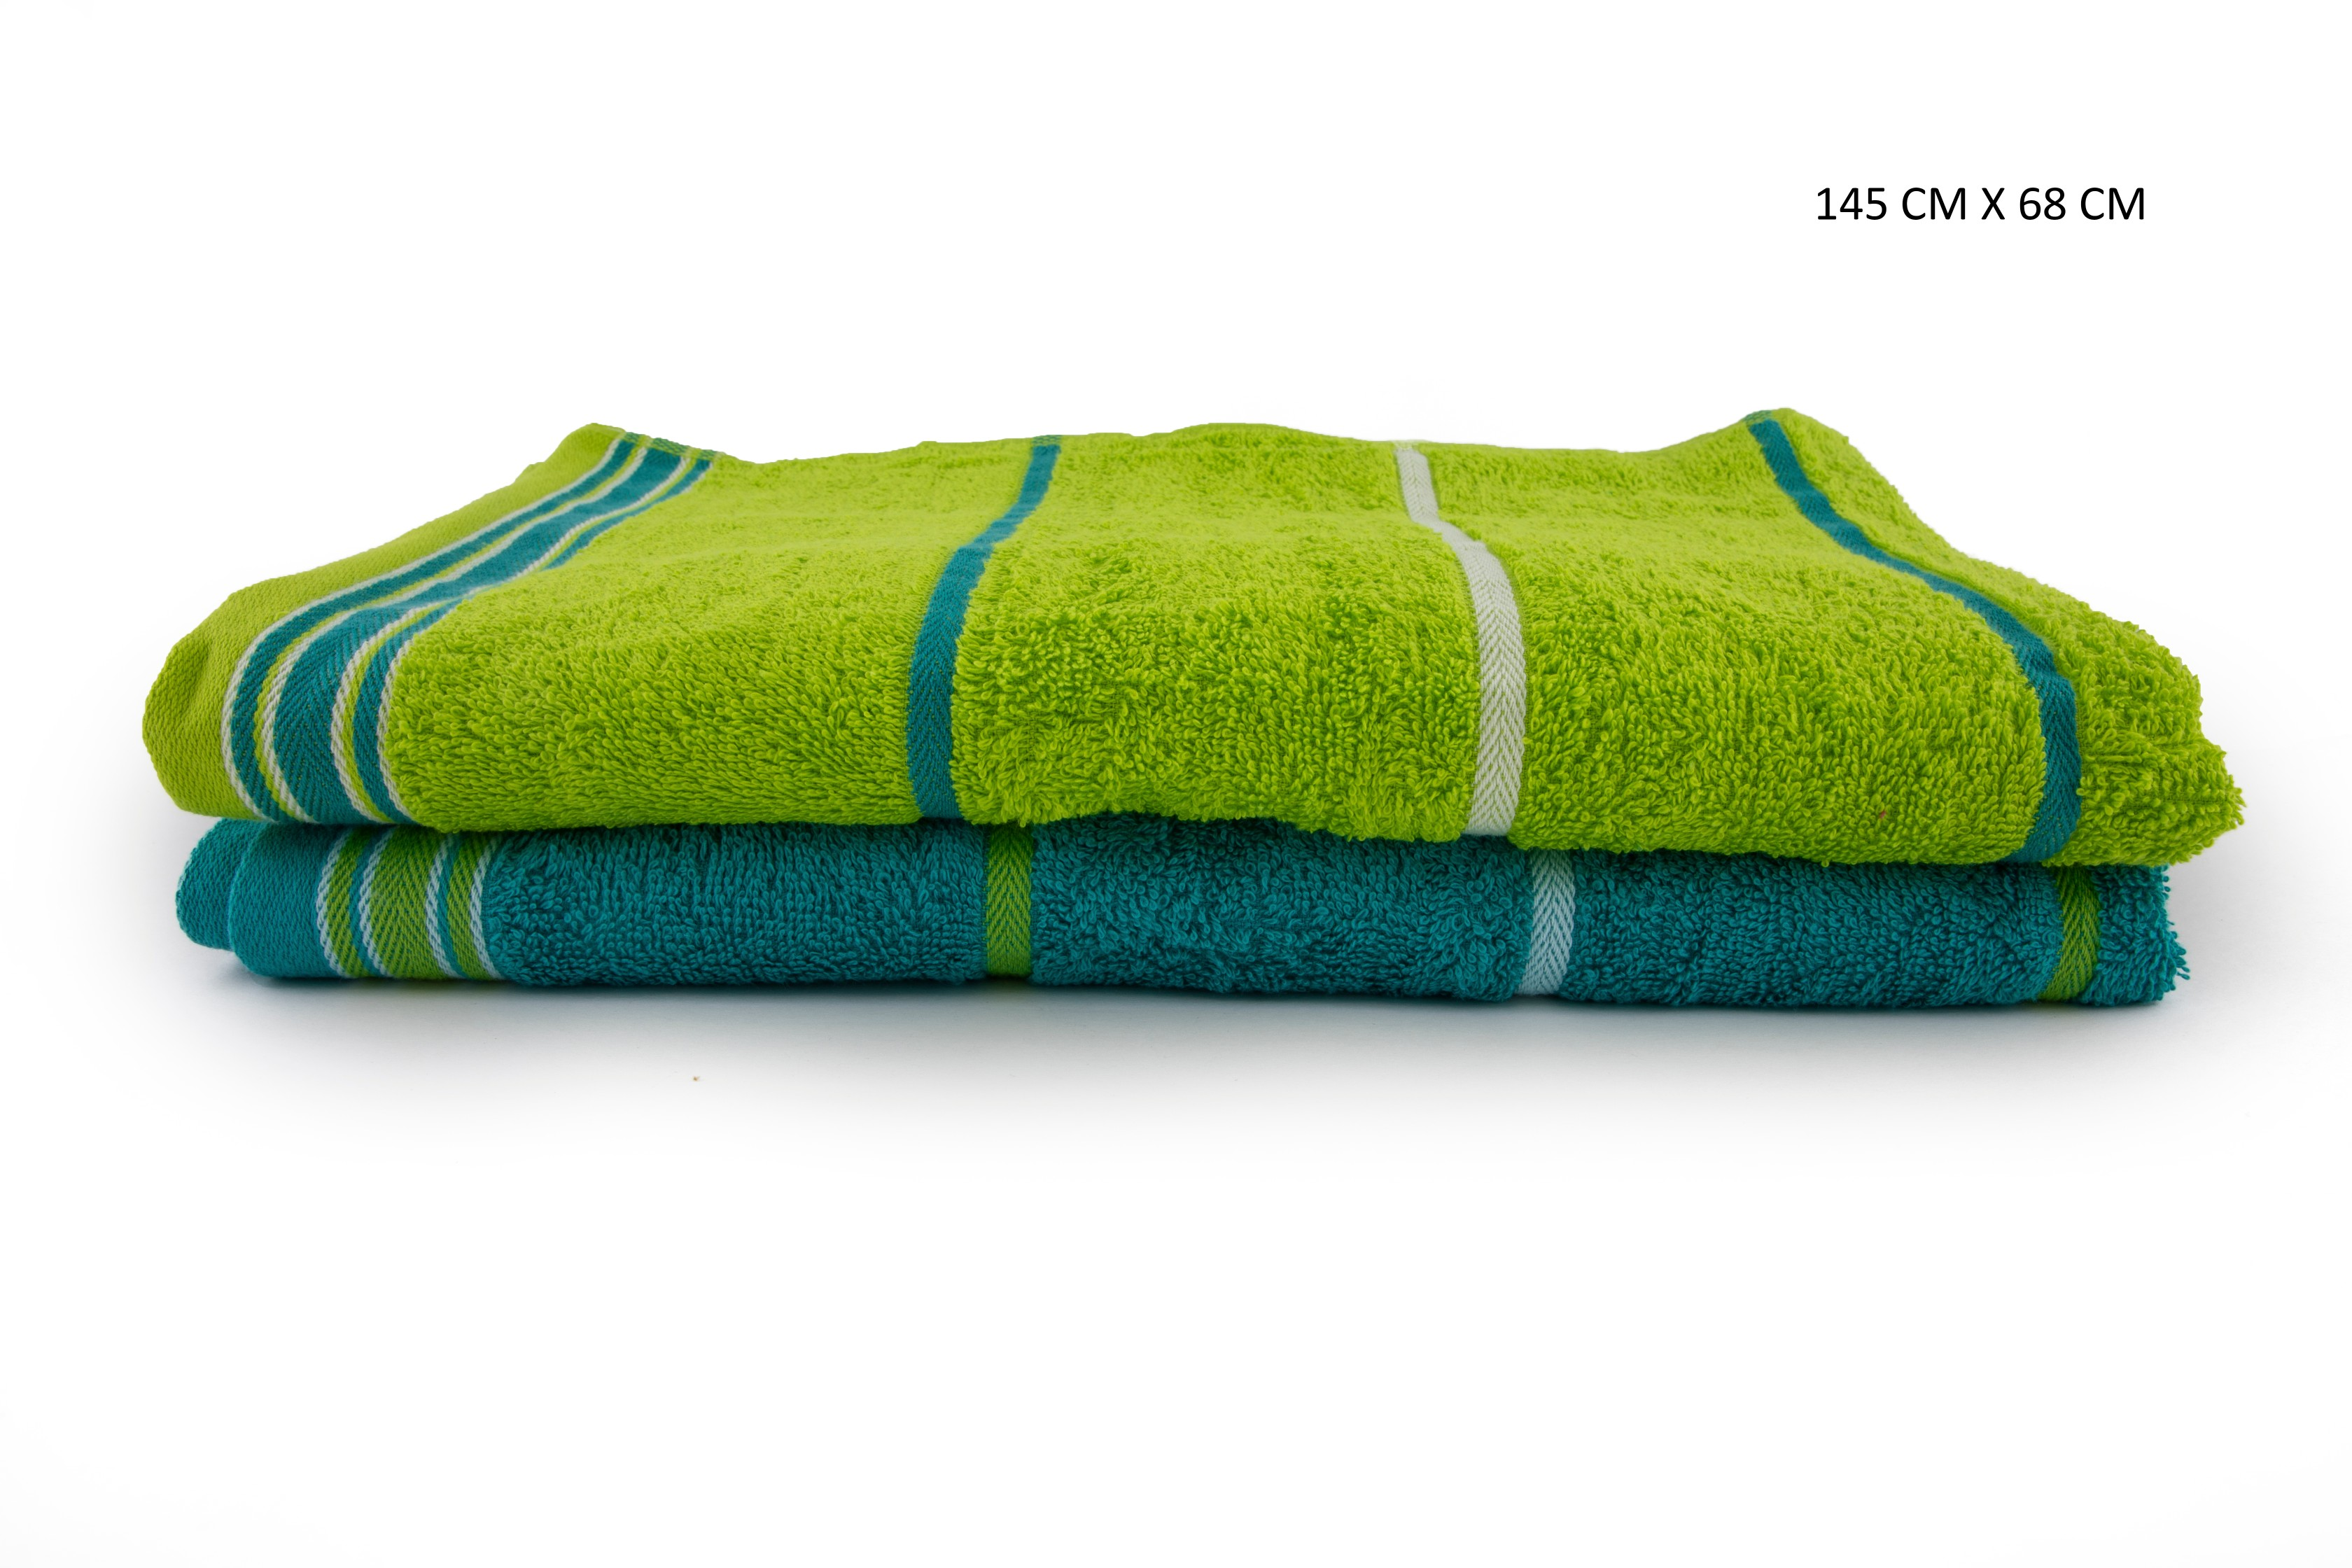 Emilia Bath Towels Set Of 2 Cotton Bath Towels in Teal & Lime Colour by HomeTown